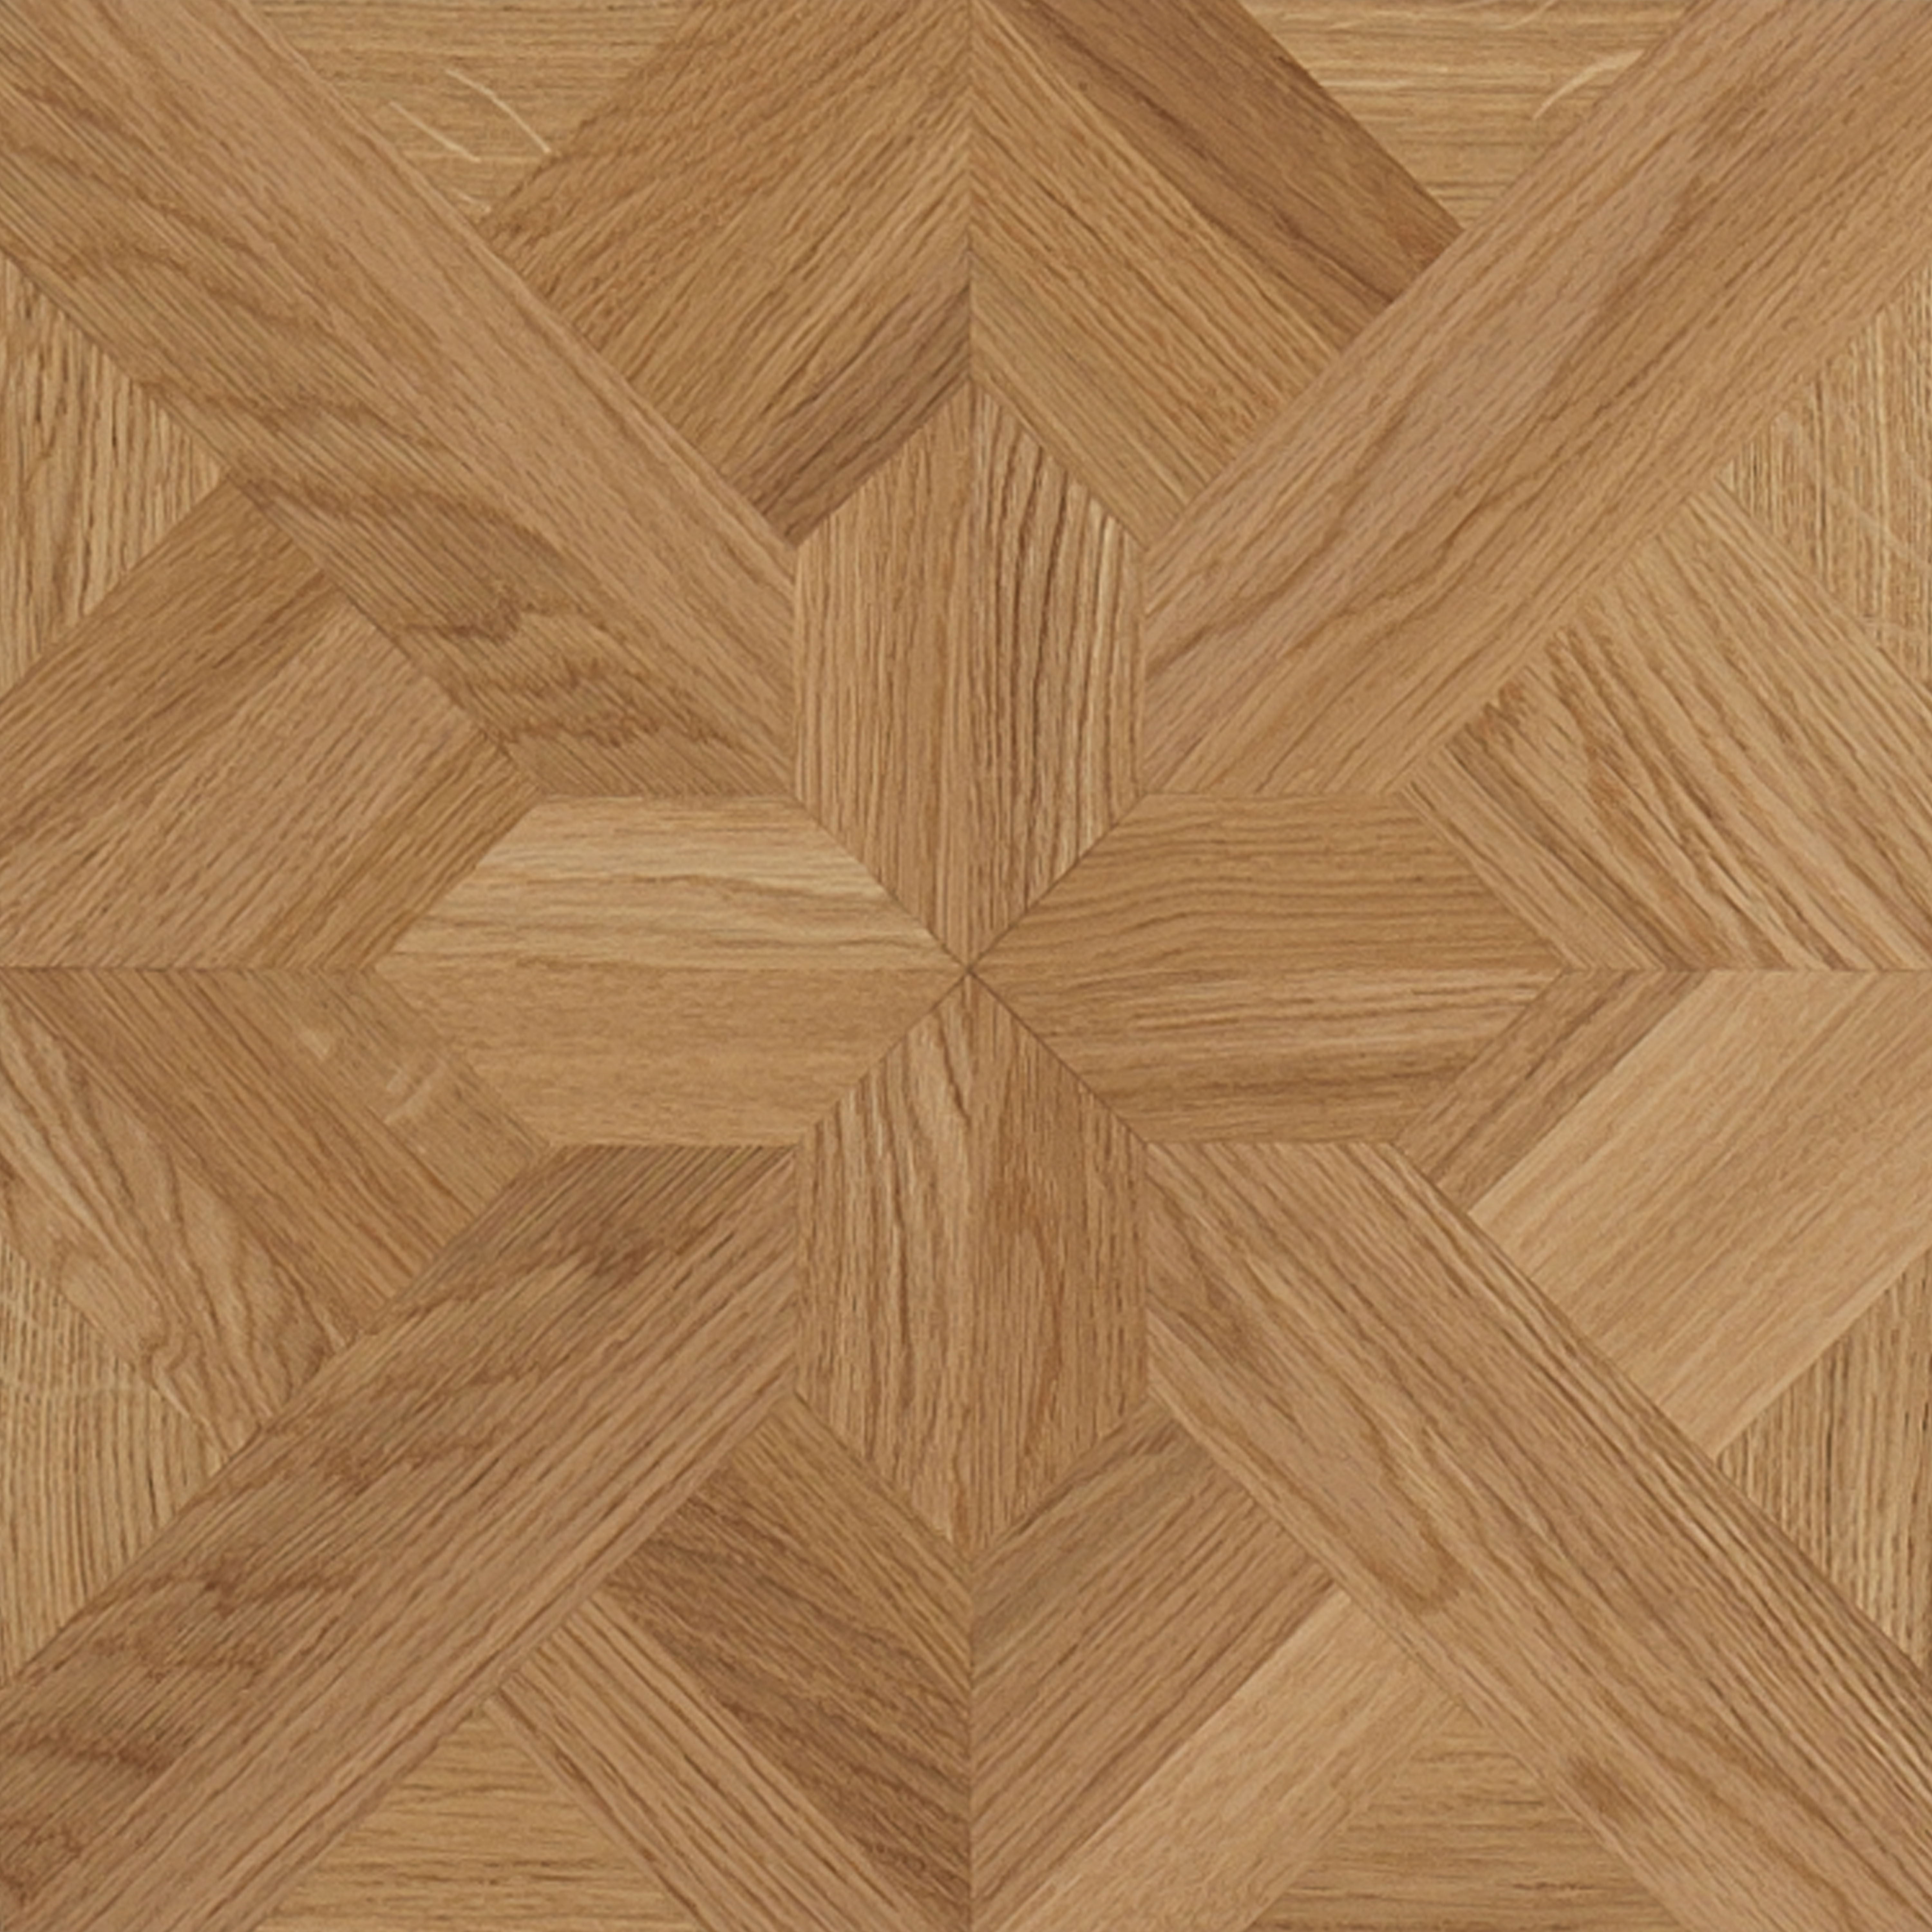 parquet ch ne classic n 2 satin carmen parquet contrecoll. Black Bedroom Furniture Sets. Home Design Ideas